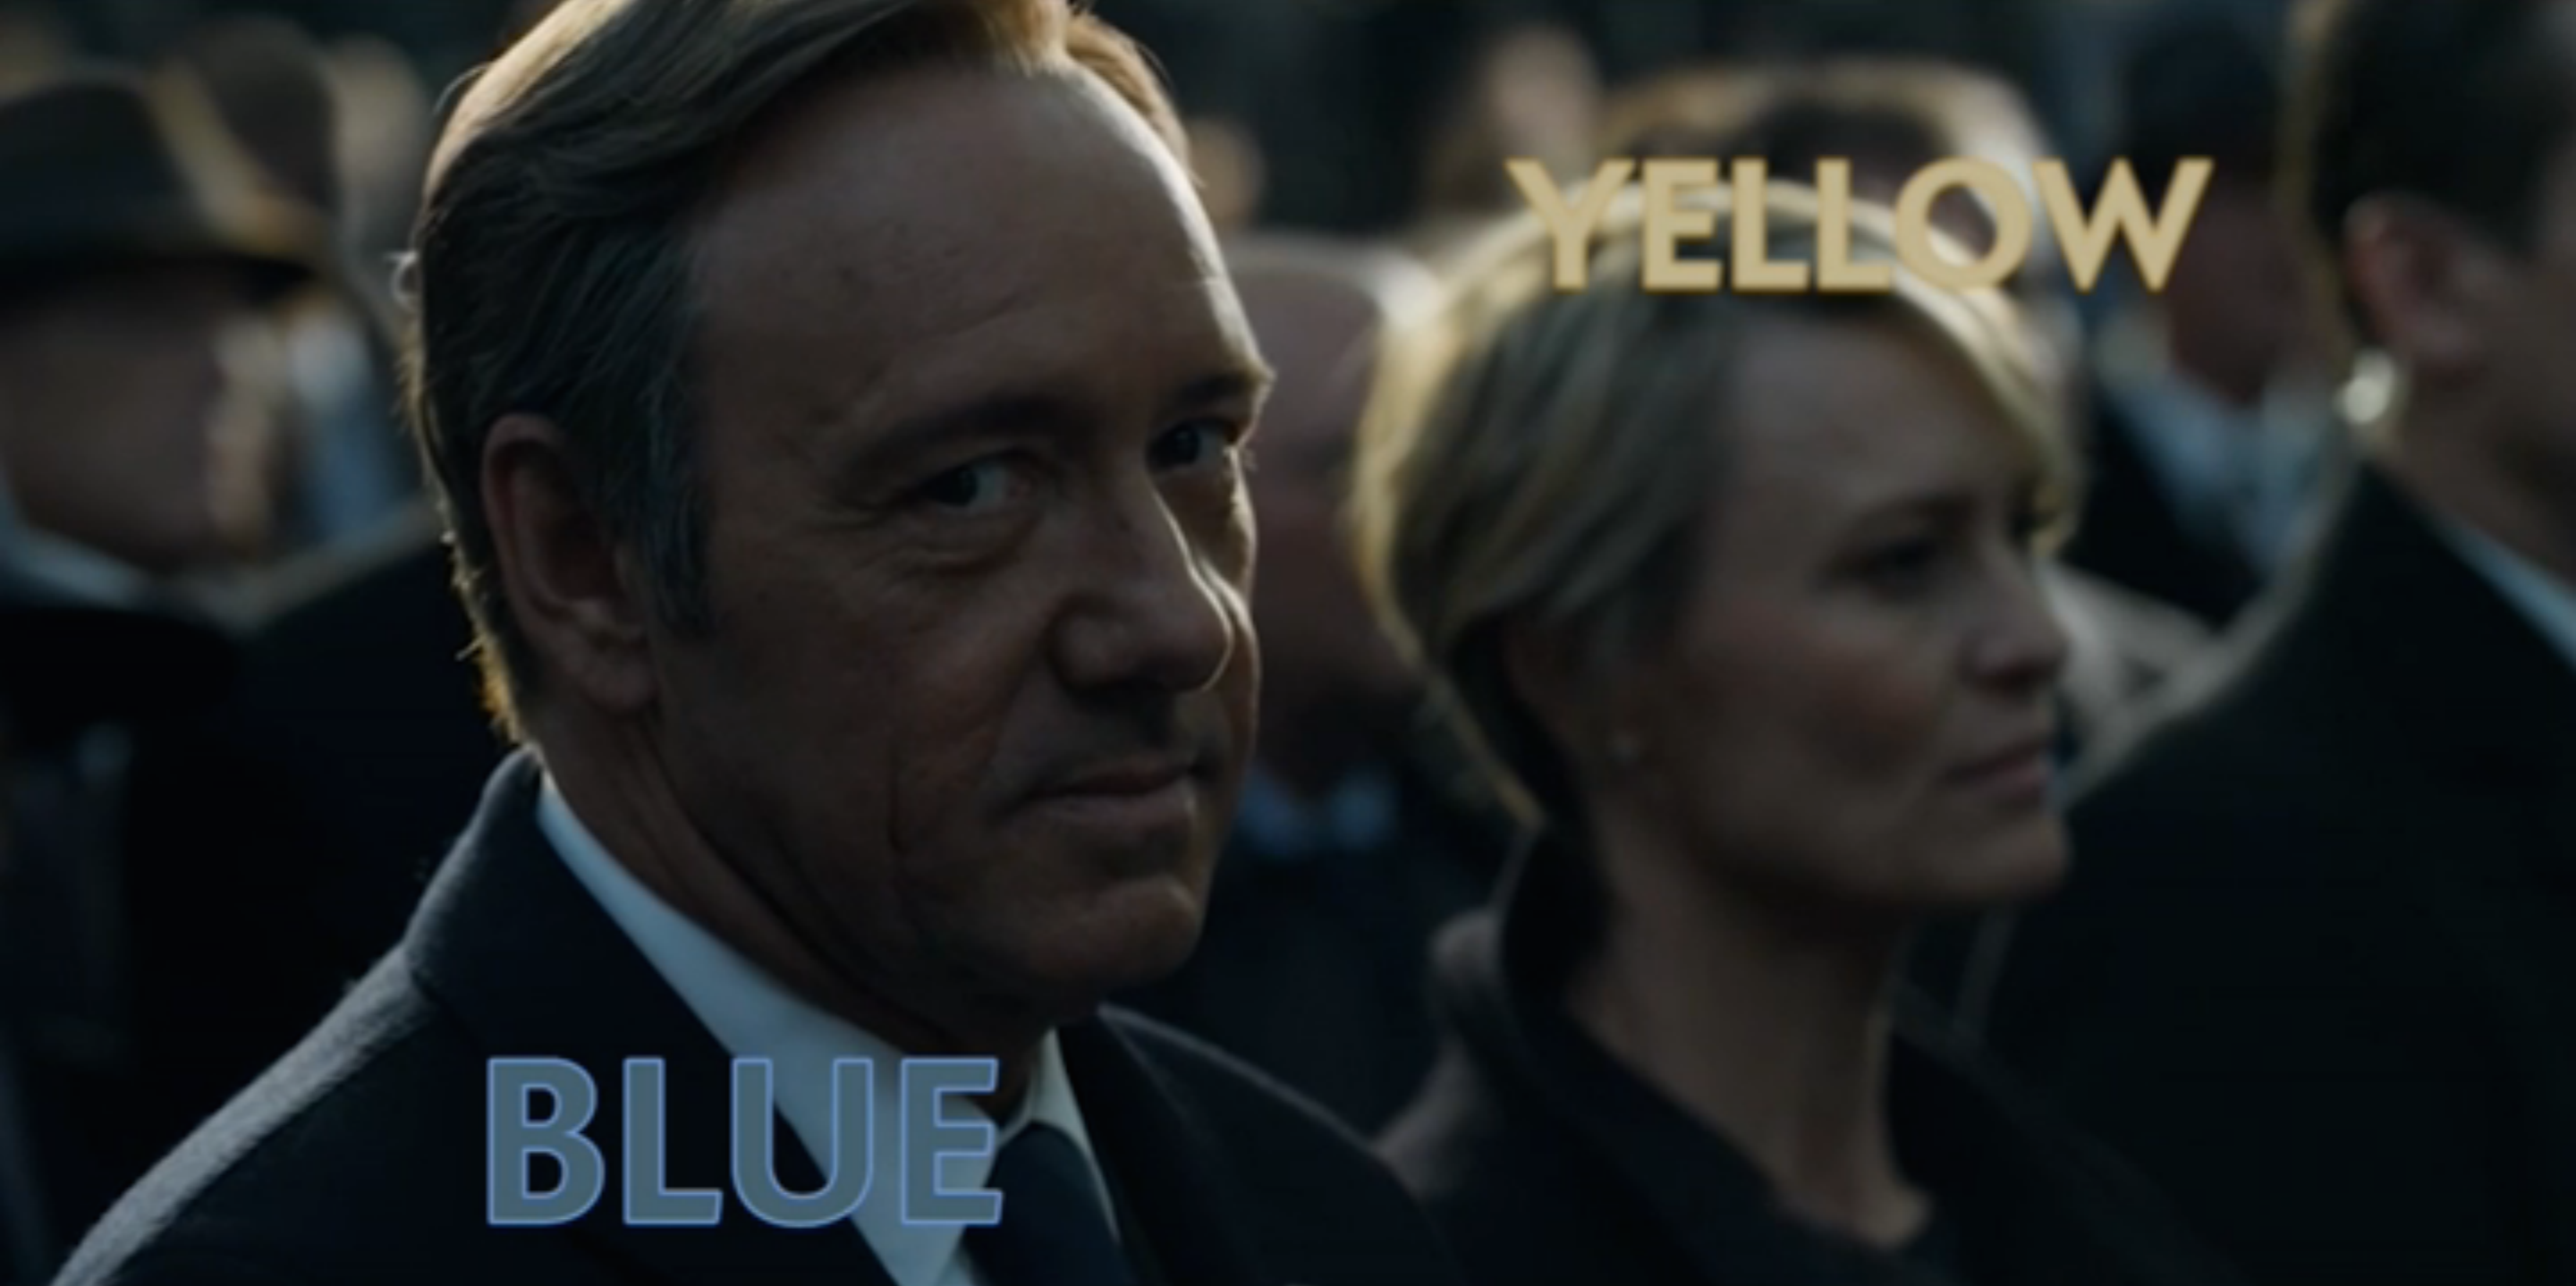 The Two Color Conspiracy in House of Cards